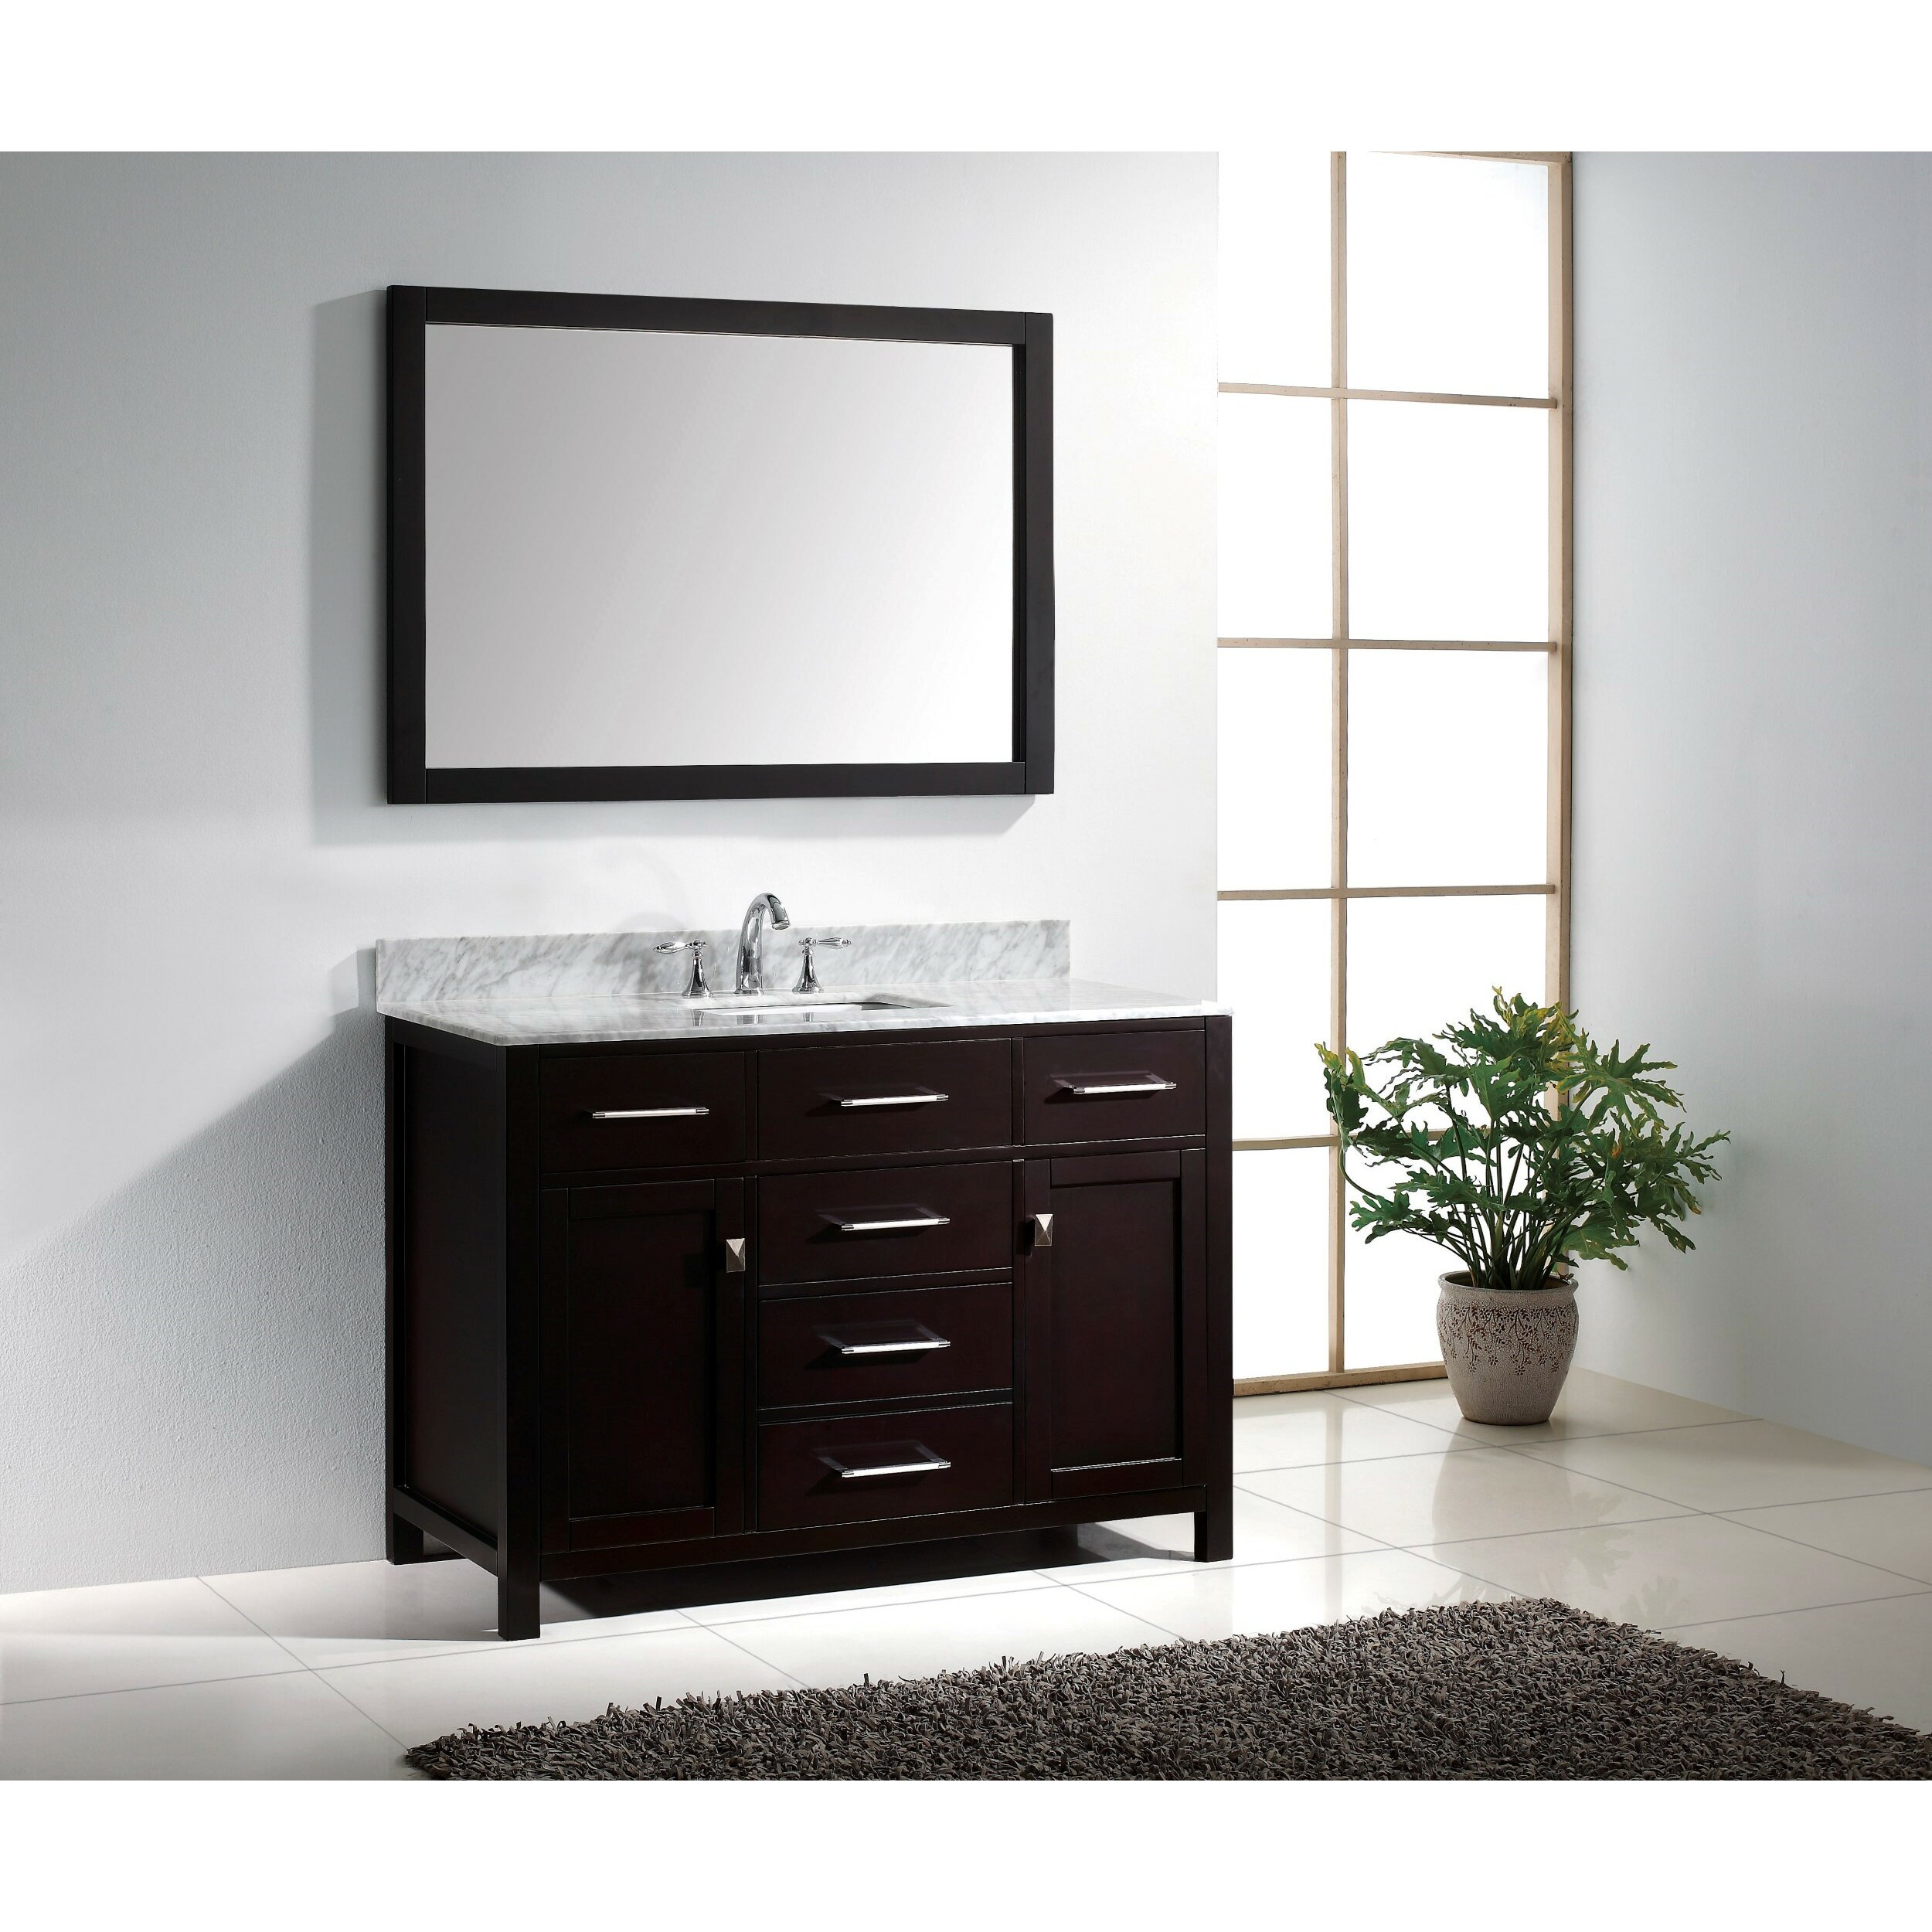 Virtu caroline 48 single bathroom vanity set with carrara for 48 inch mirrored bathroom vanity